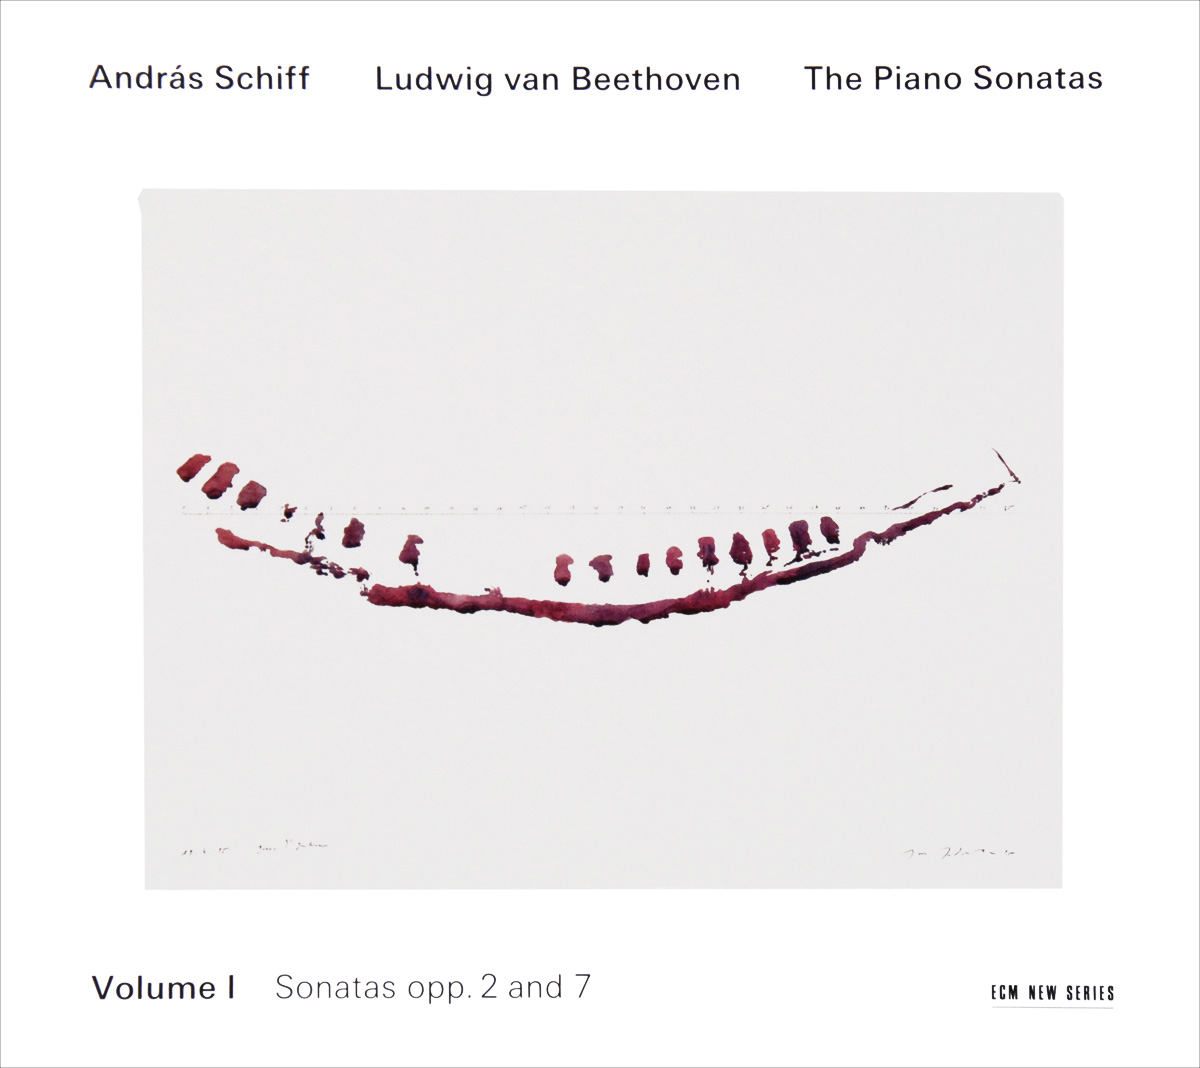 лучшая цена Андрас Шифф Andras Schiff. Beethoven. The Piano Sonatas. Volume I (2 CD)